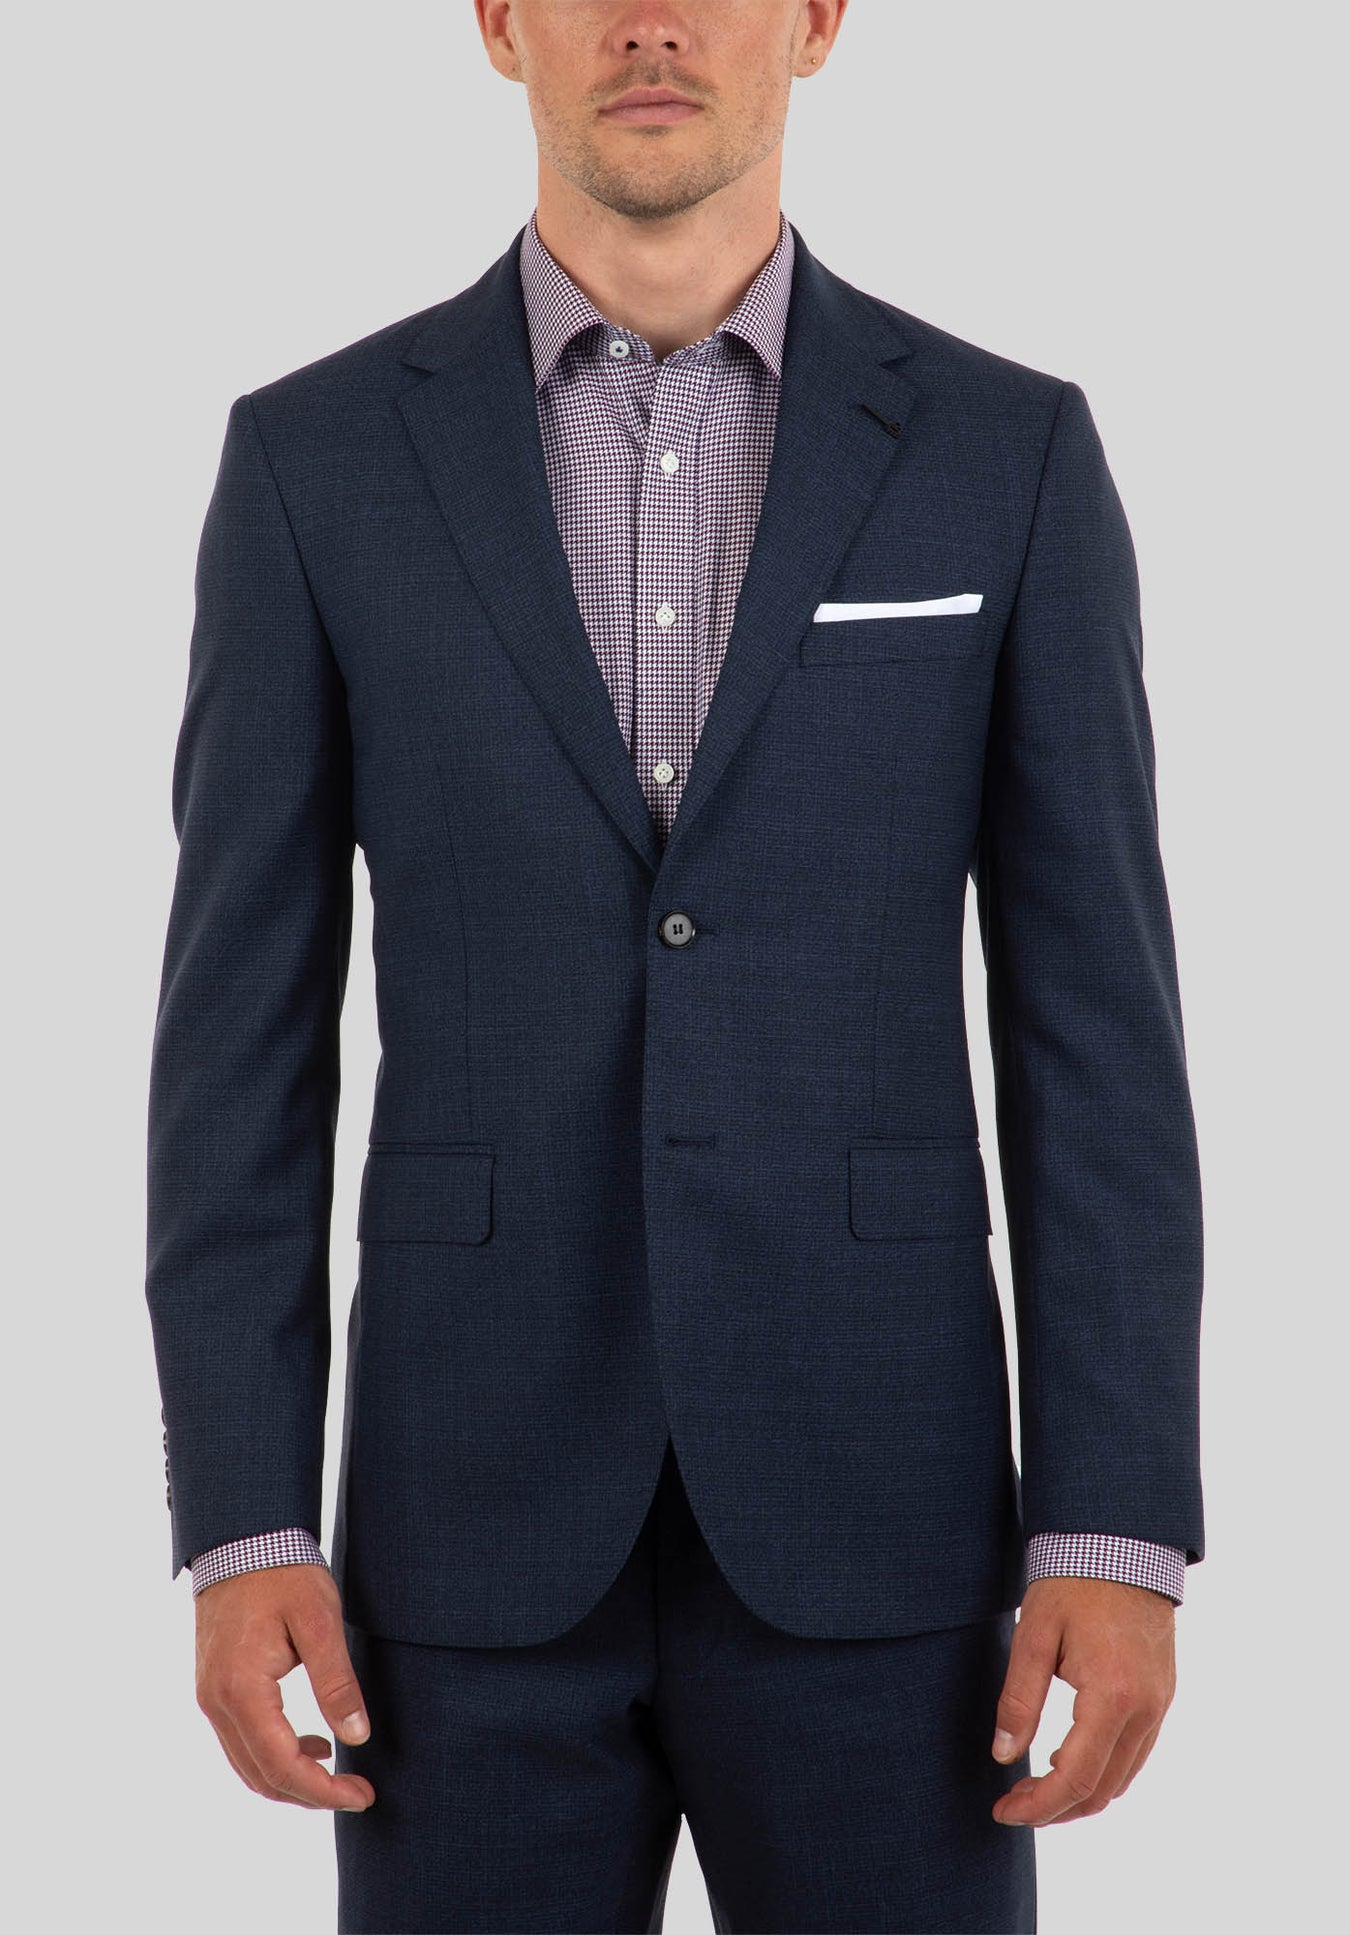 CAPTAIN PLATINUM JACKET FJK820 - Navy